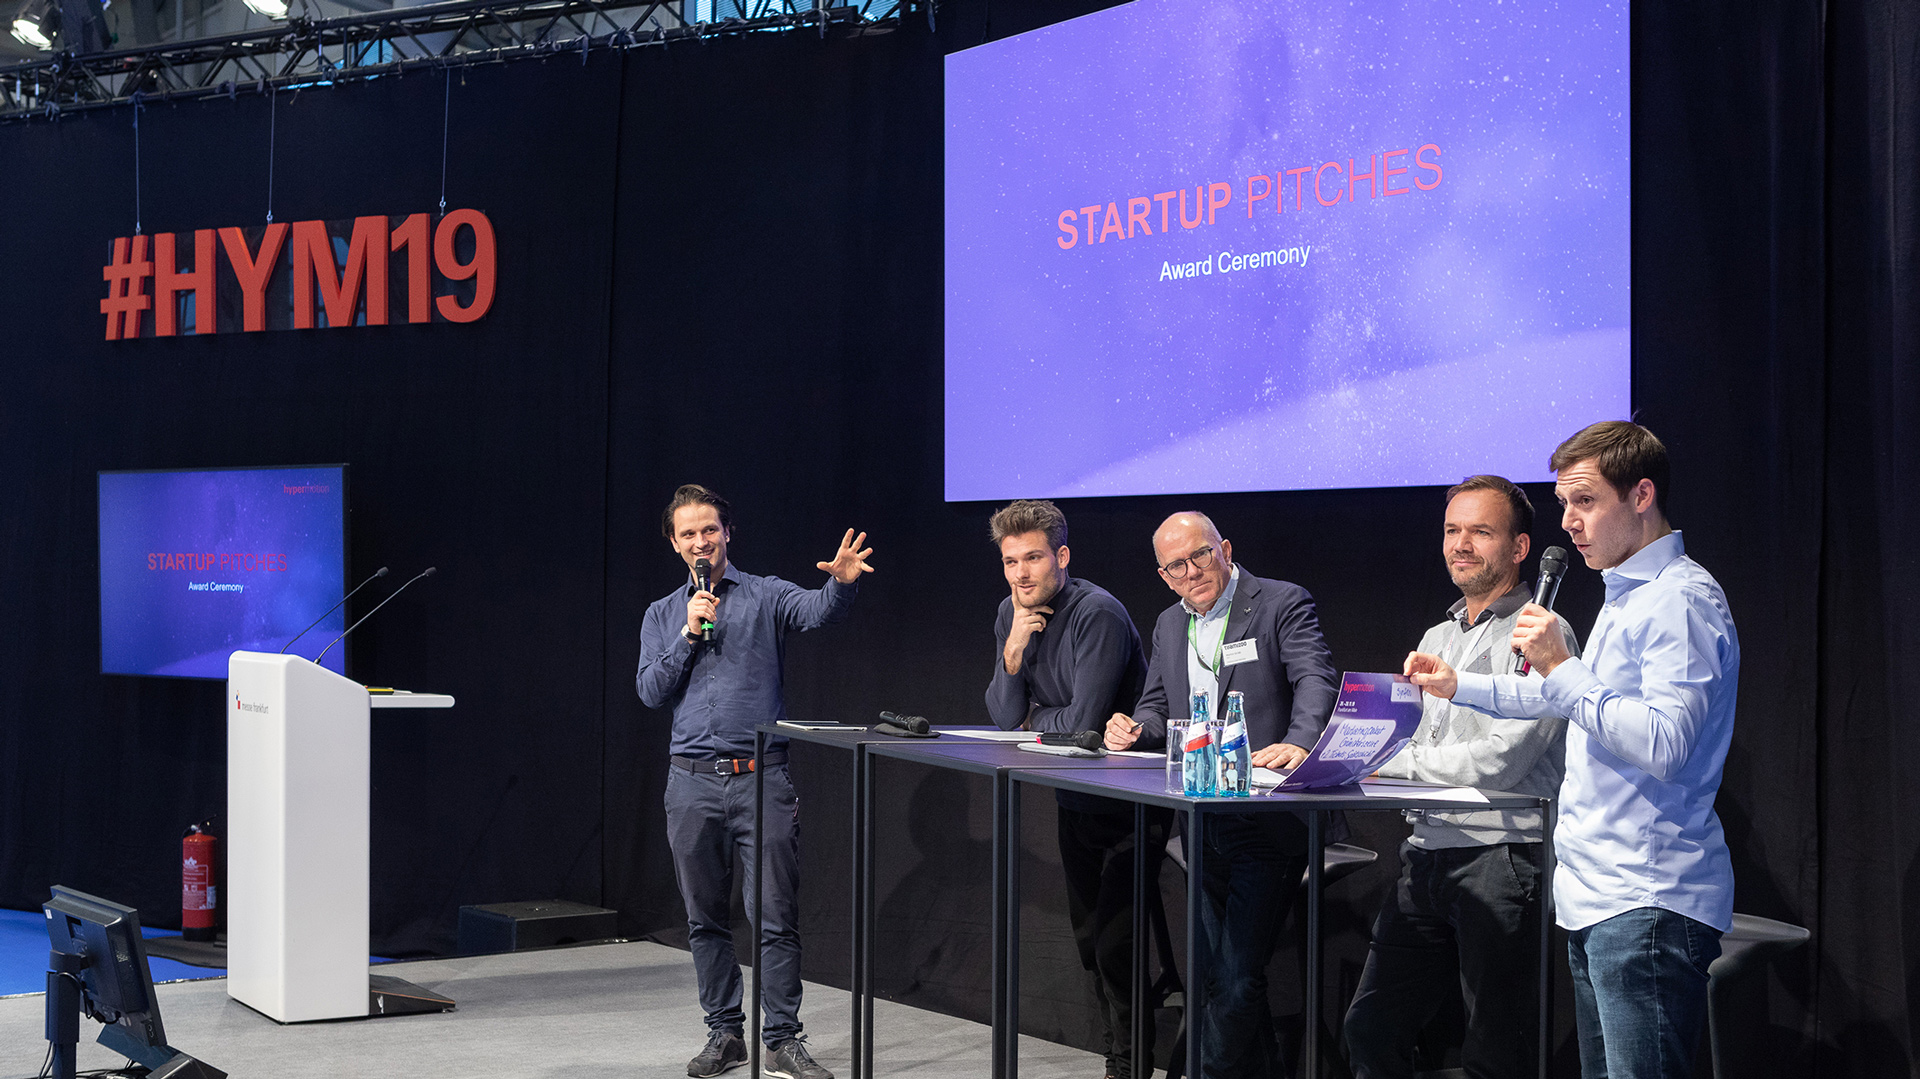 Start-up Pitch